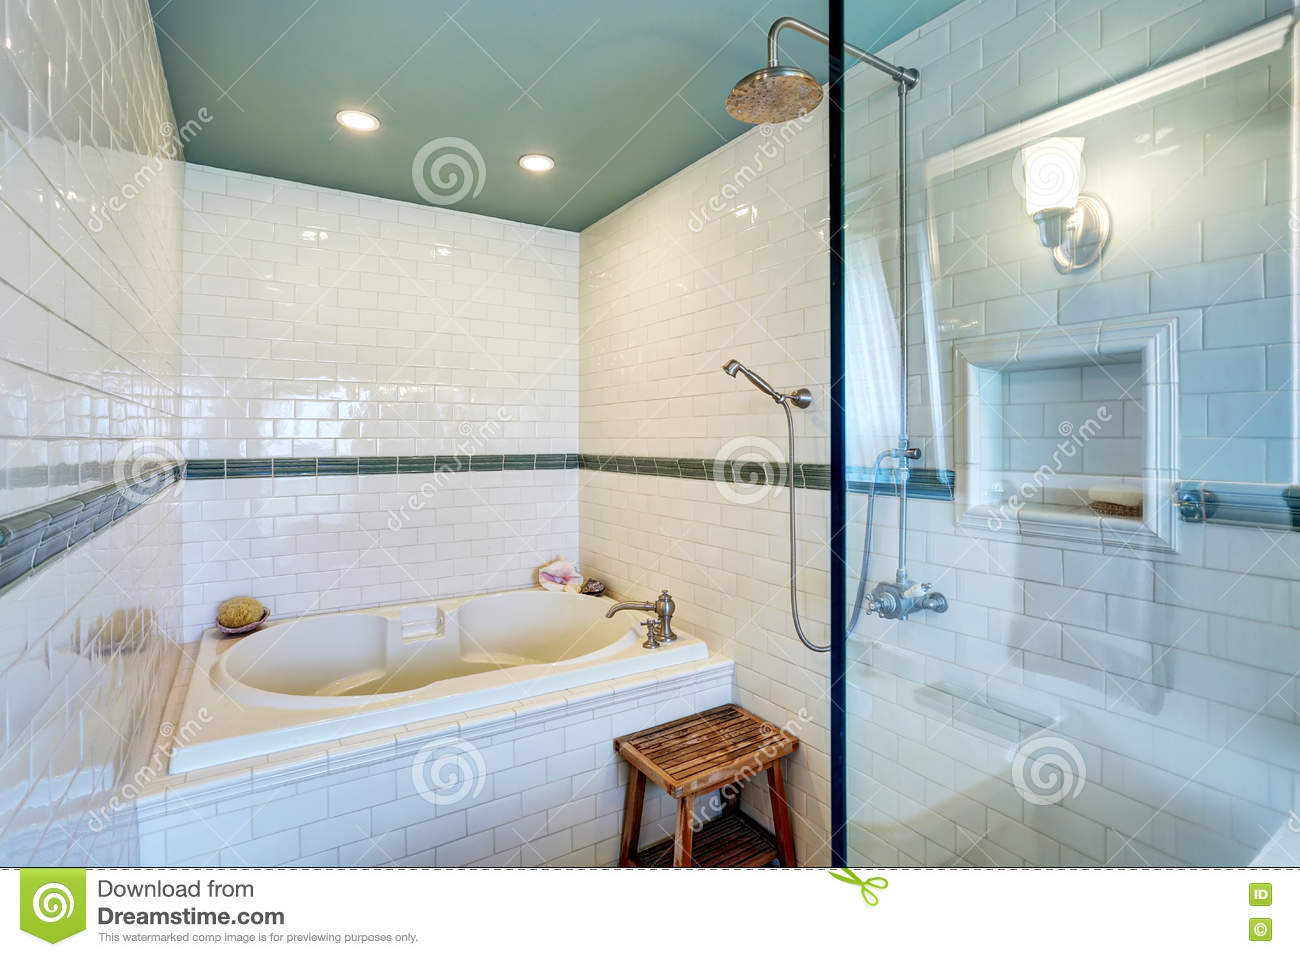 Blue Bathroom Interior With White Tile Trim Wall, Glass Cabin Shower ...